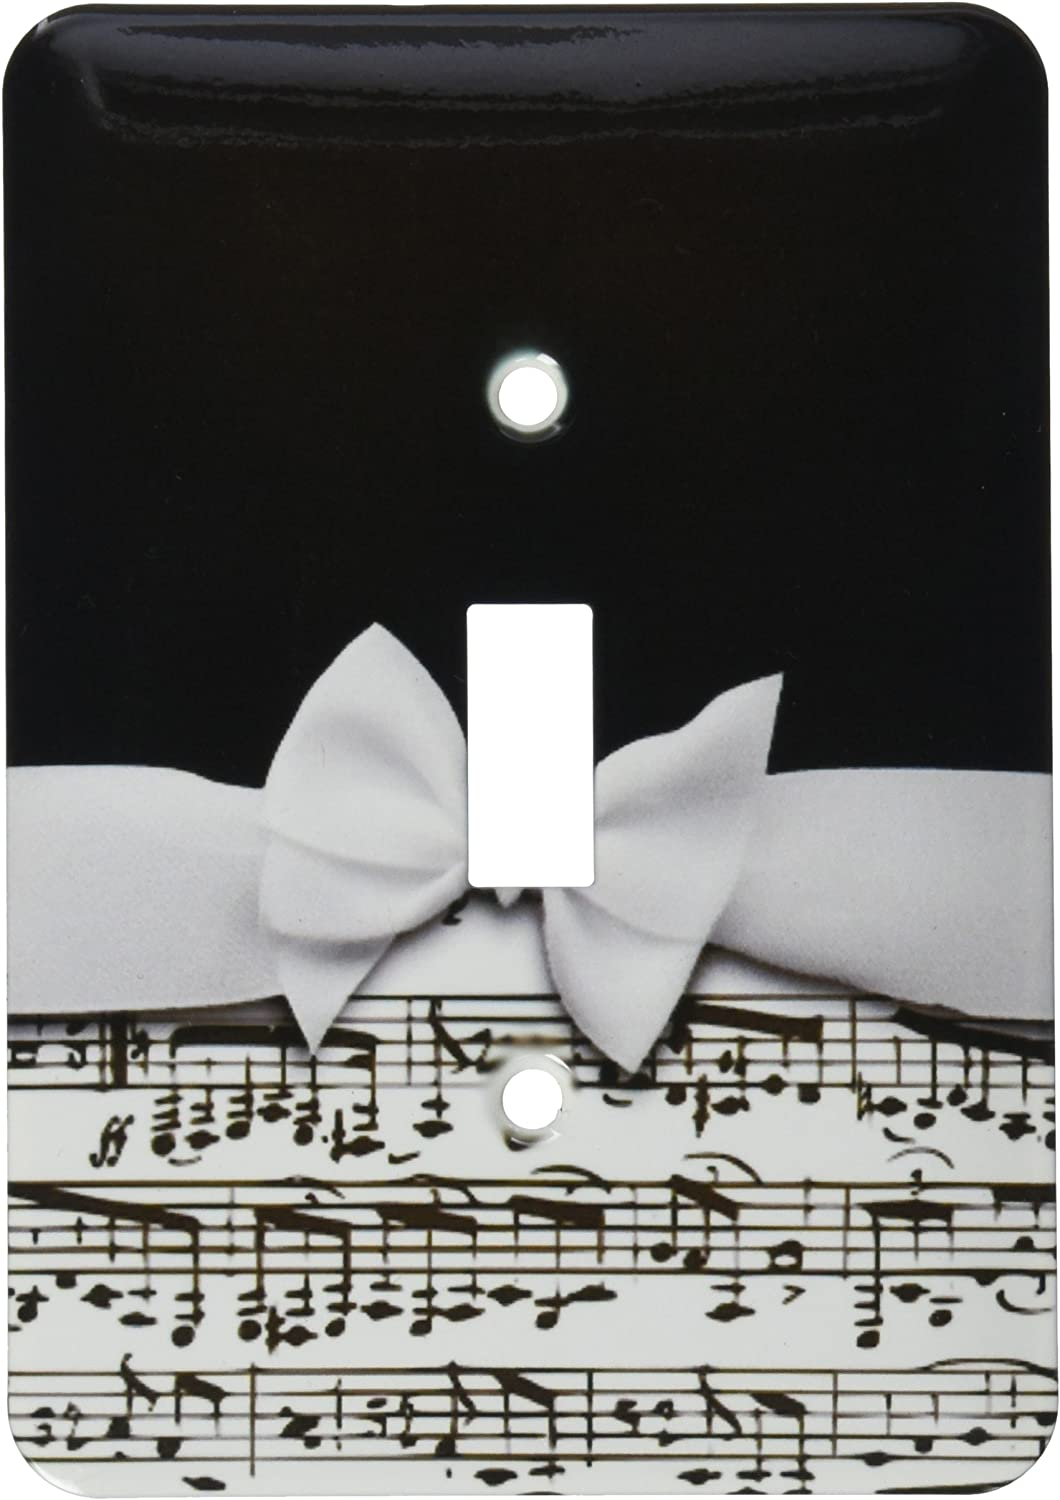 3drose Lsp 123130 1 Stylish Musical Notes Faux Ribbon And Bow Black And White Sheet Music Girly Classy Elegant Design Light Switch Cover Amazon Com